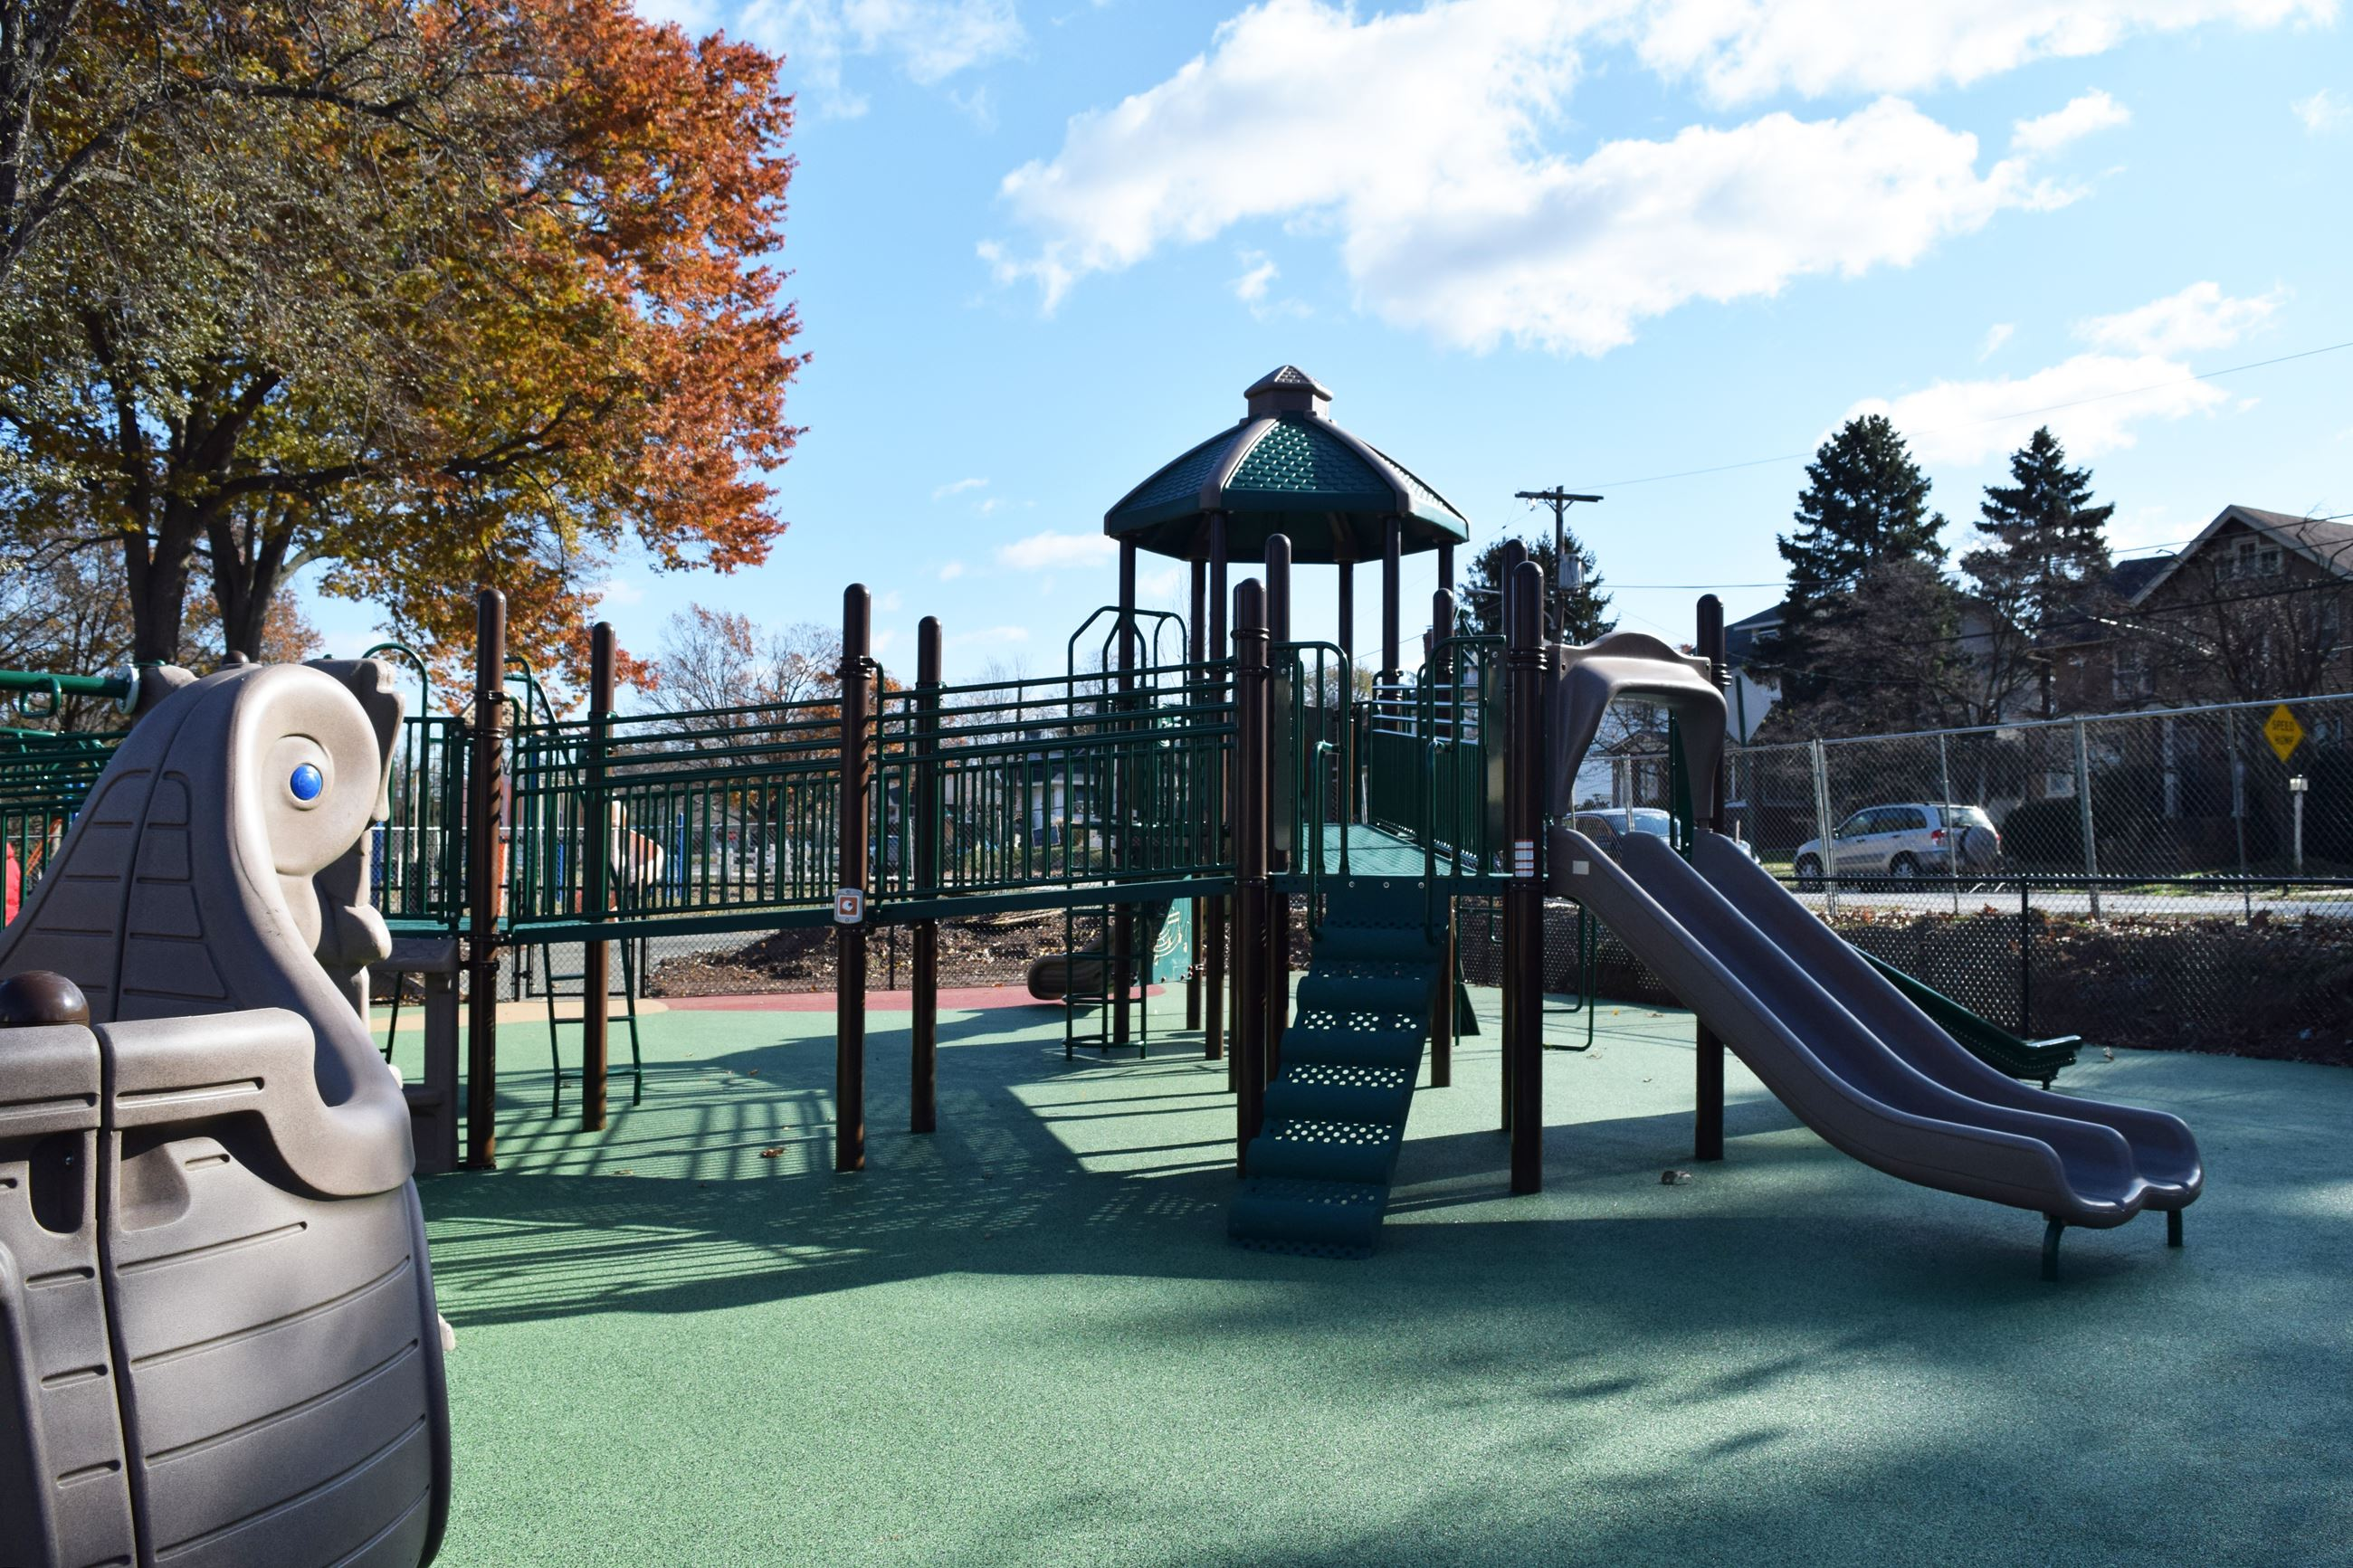 All-Abilities Playground